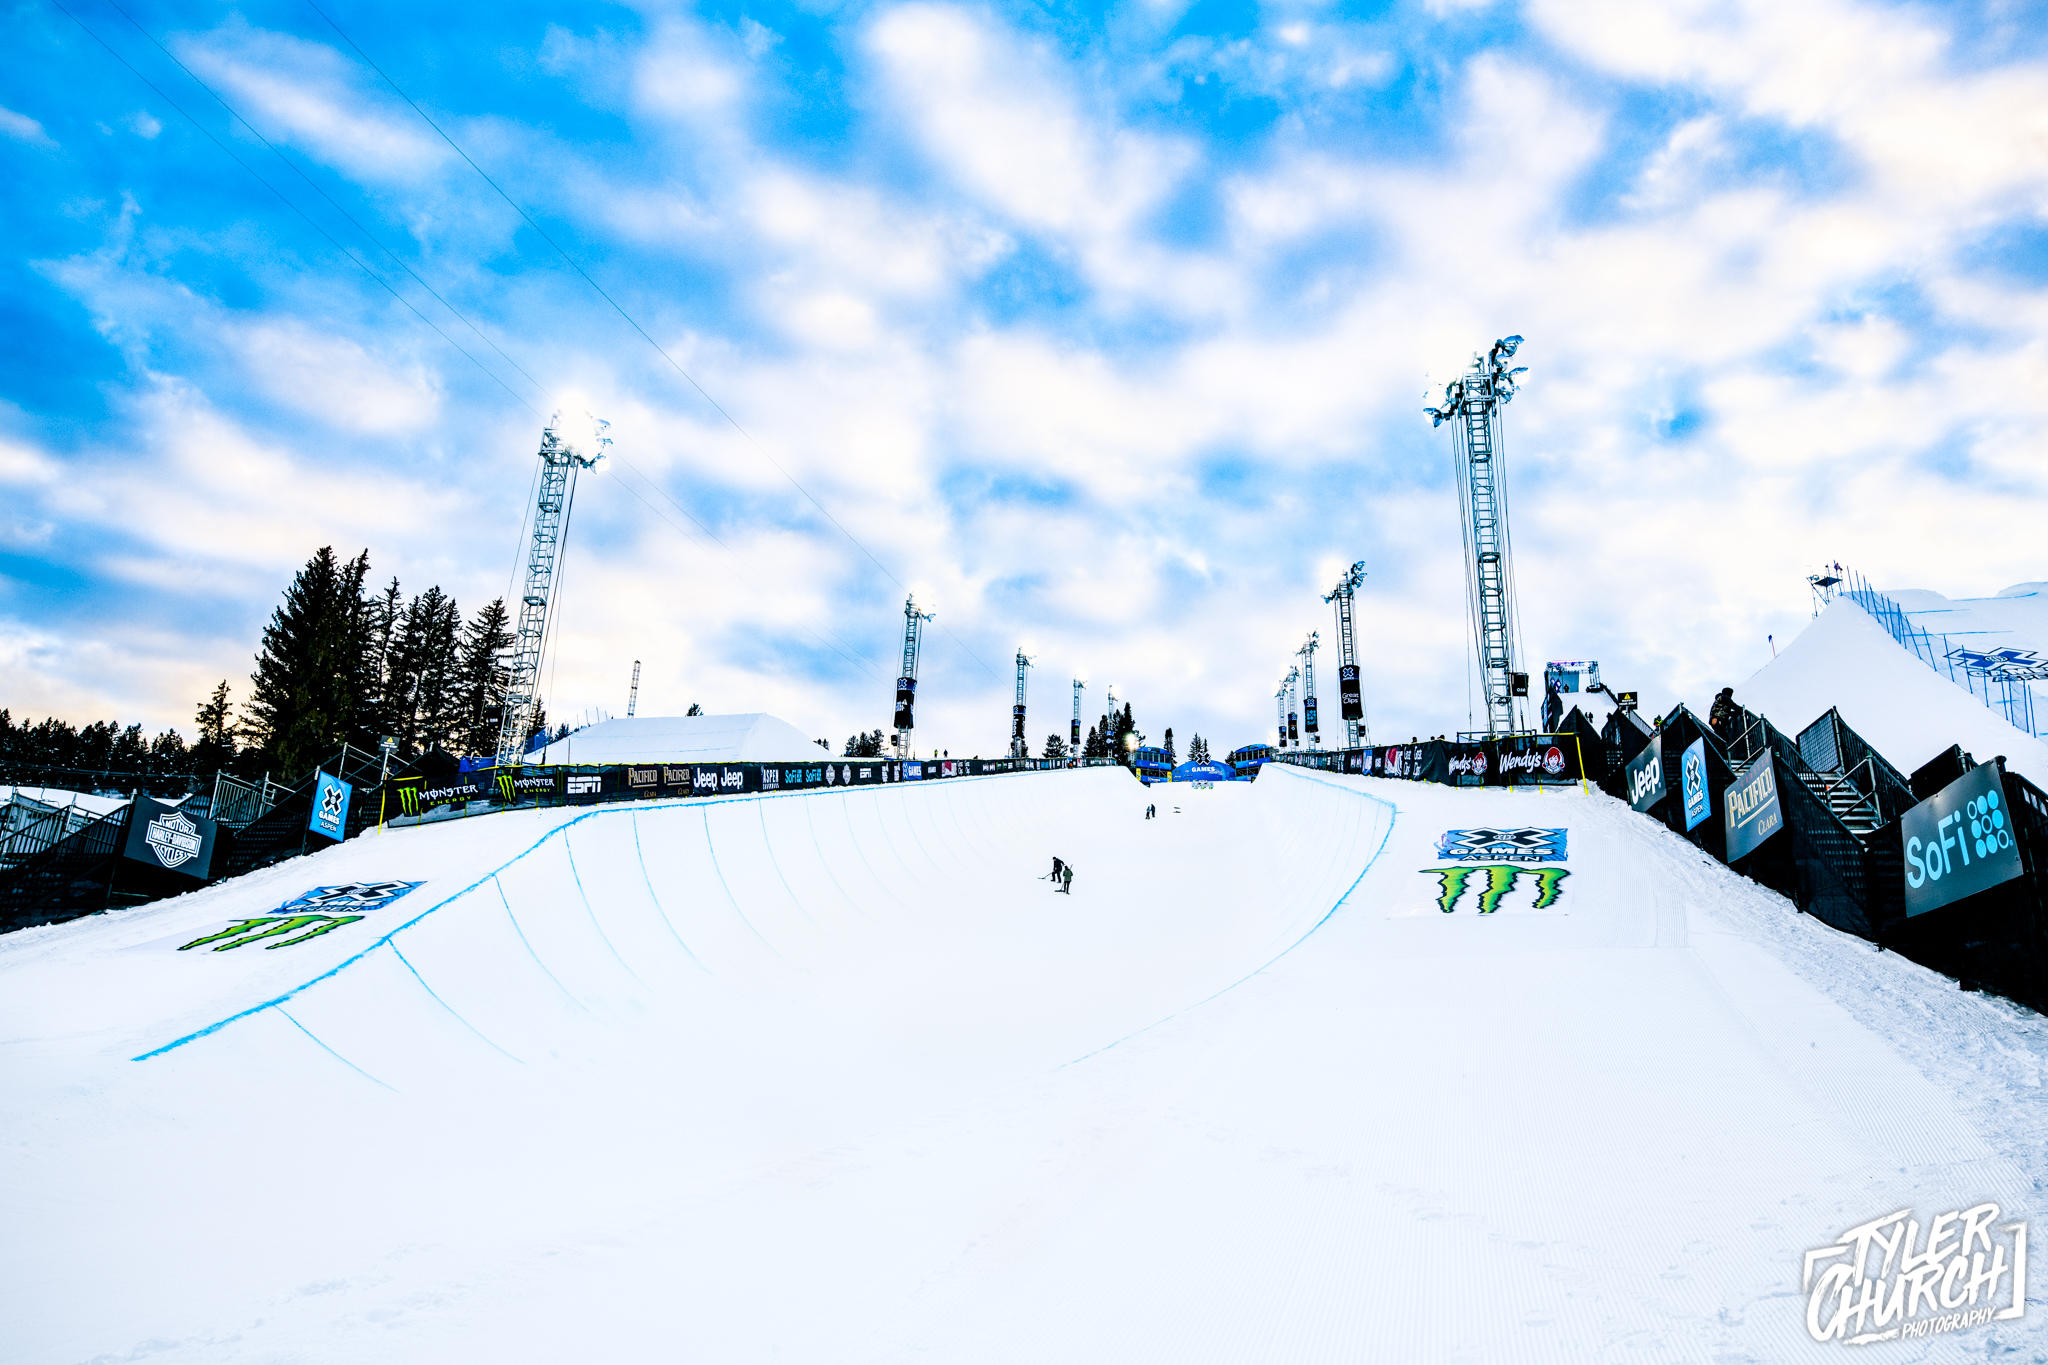 X Games Aspen Superpipe